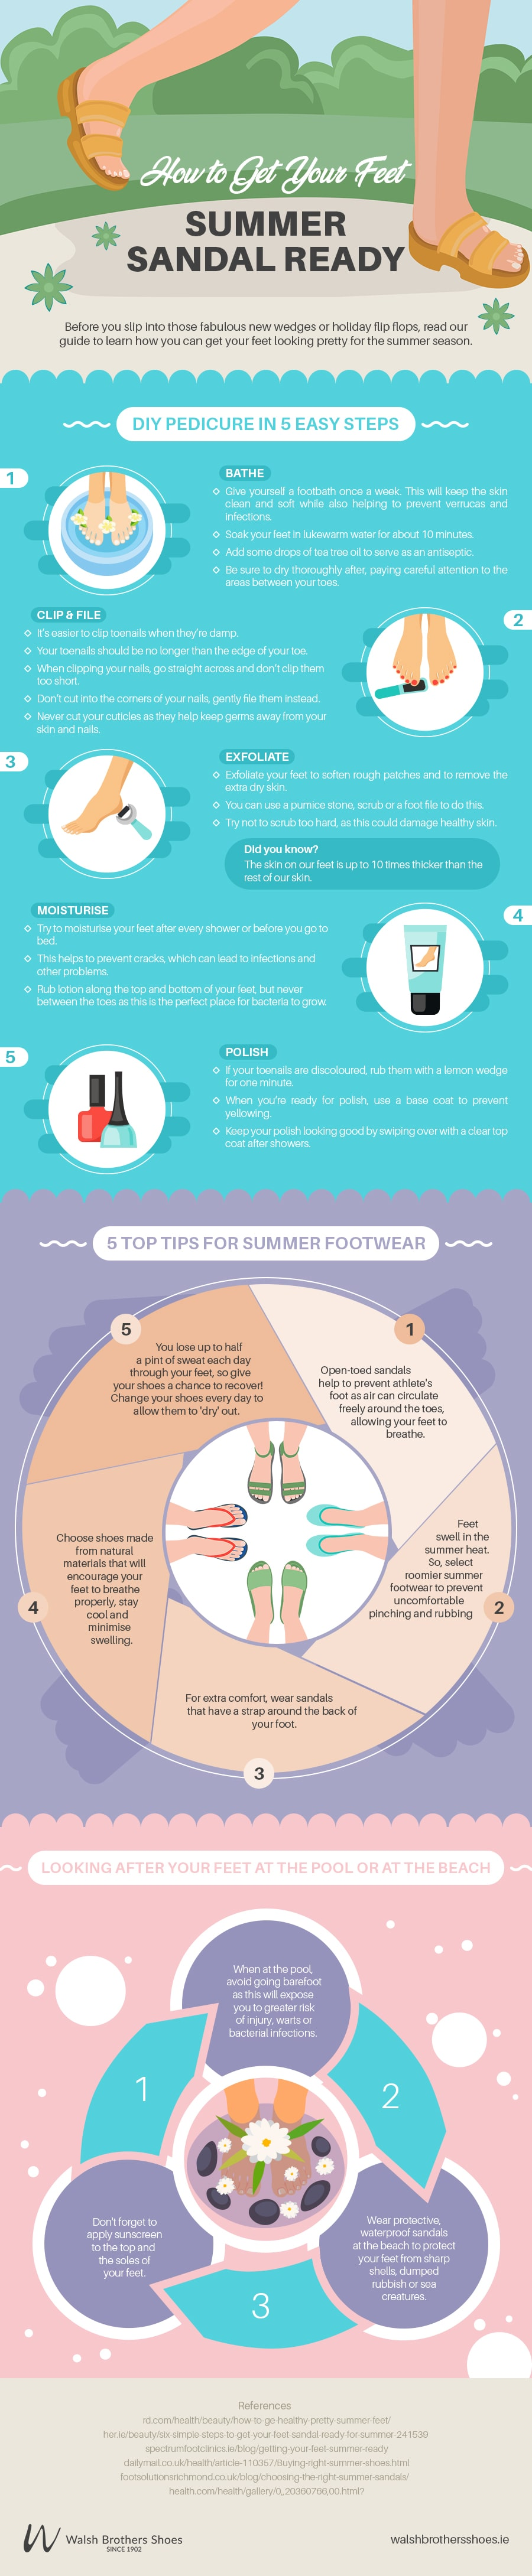 How to Get Your Feet Summer Sandal Ready